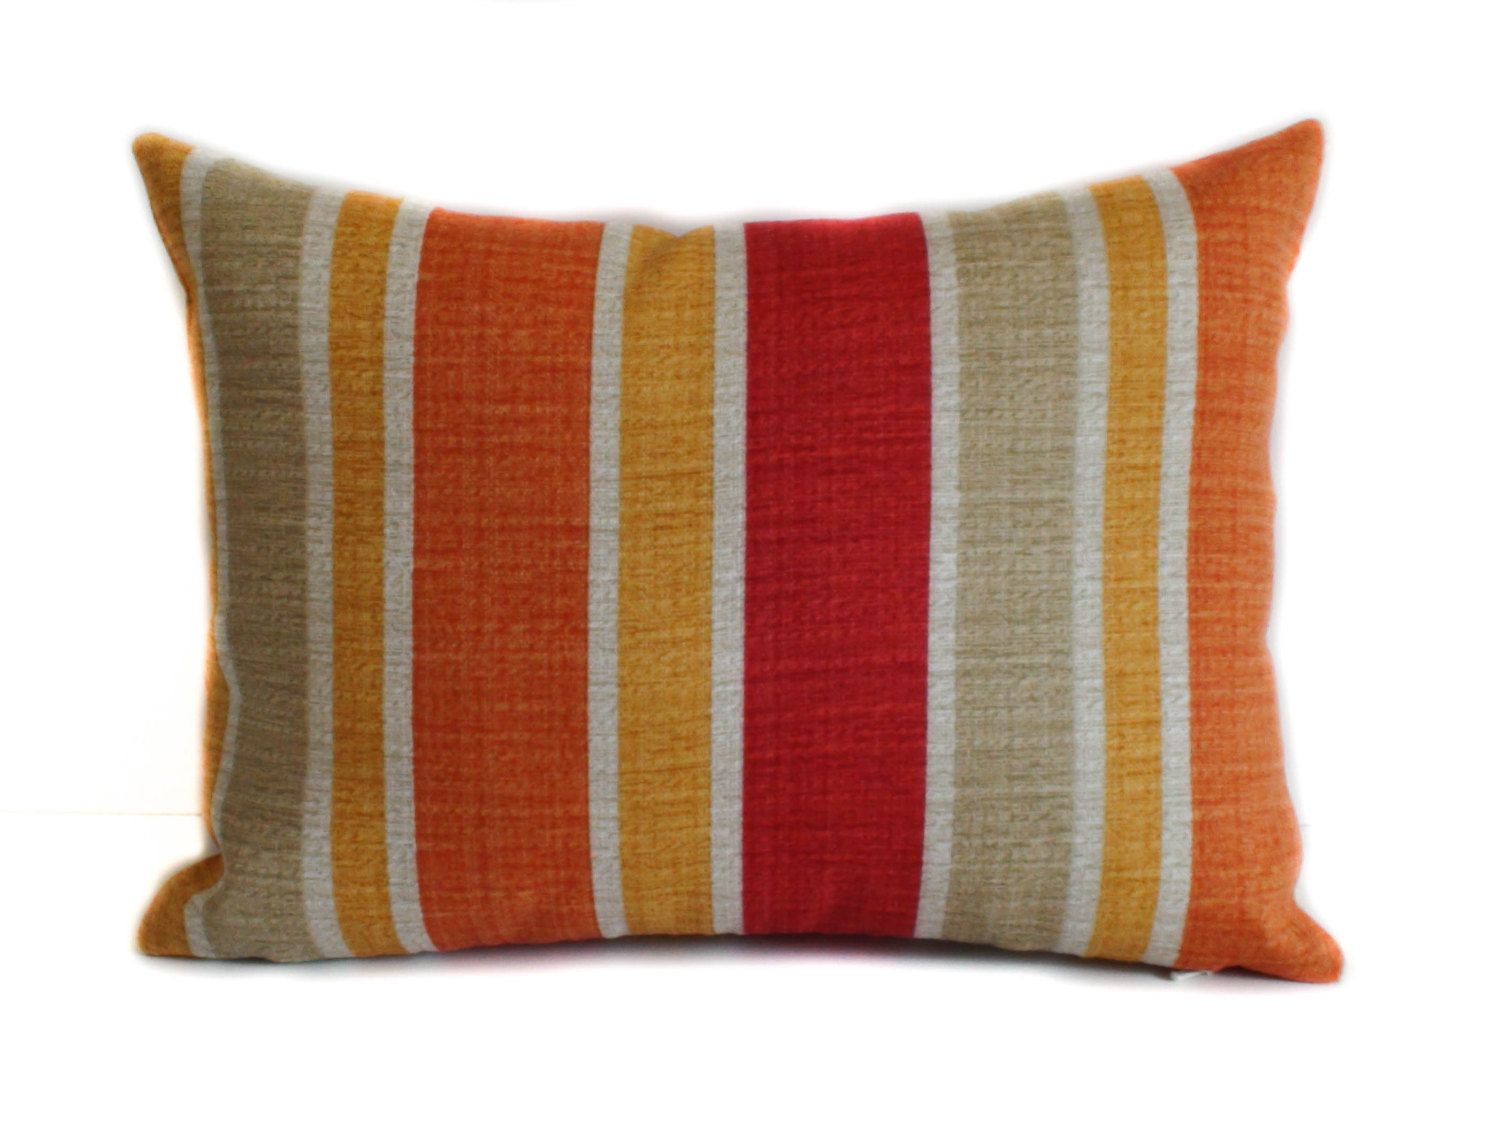 Etsy Throw Pillows Outdoor Pillow Cover 12x16 Red Outdoor Pillow Yellow Outdoor